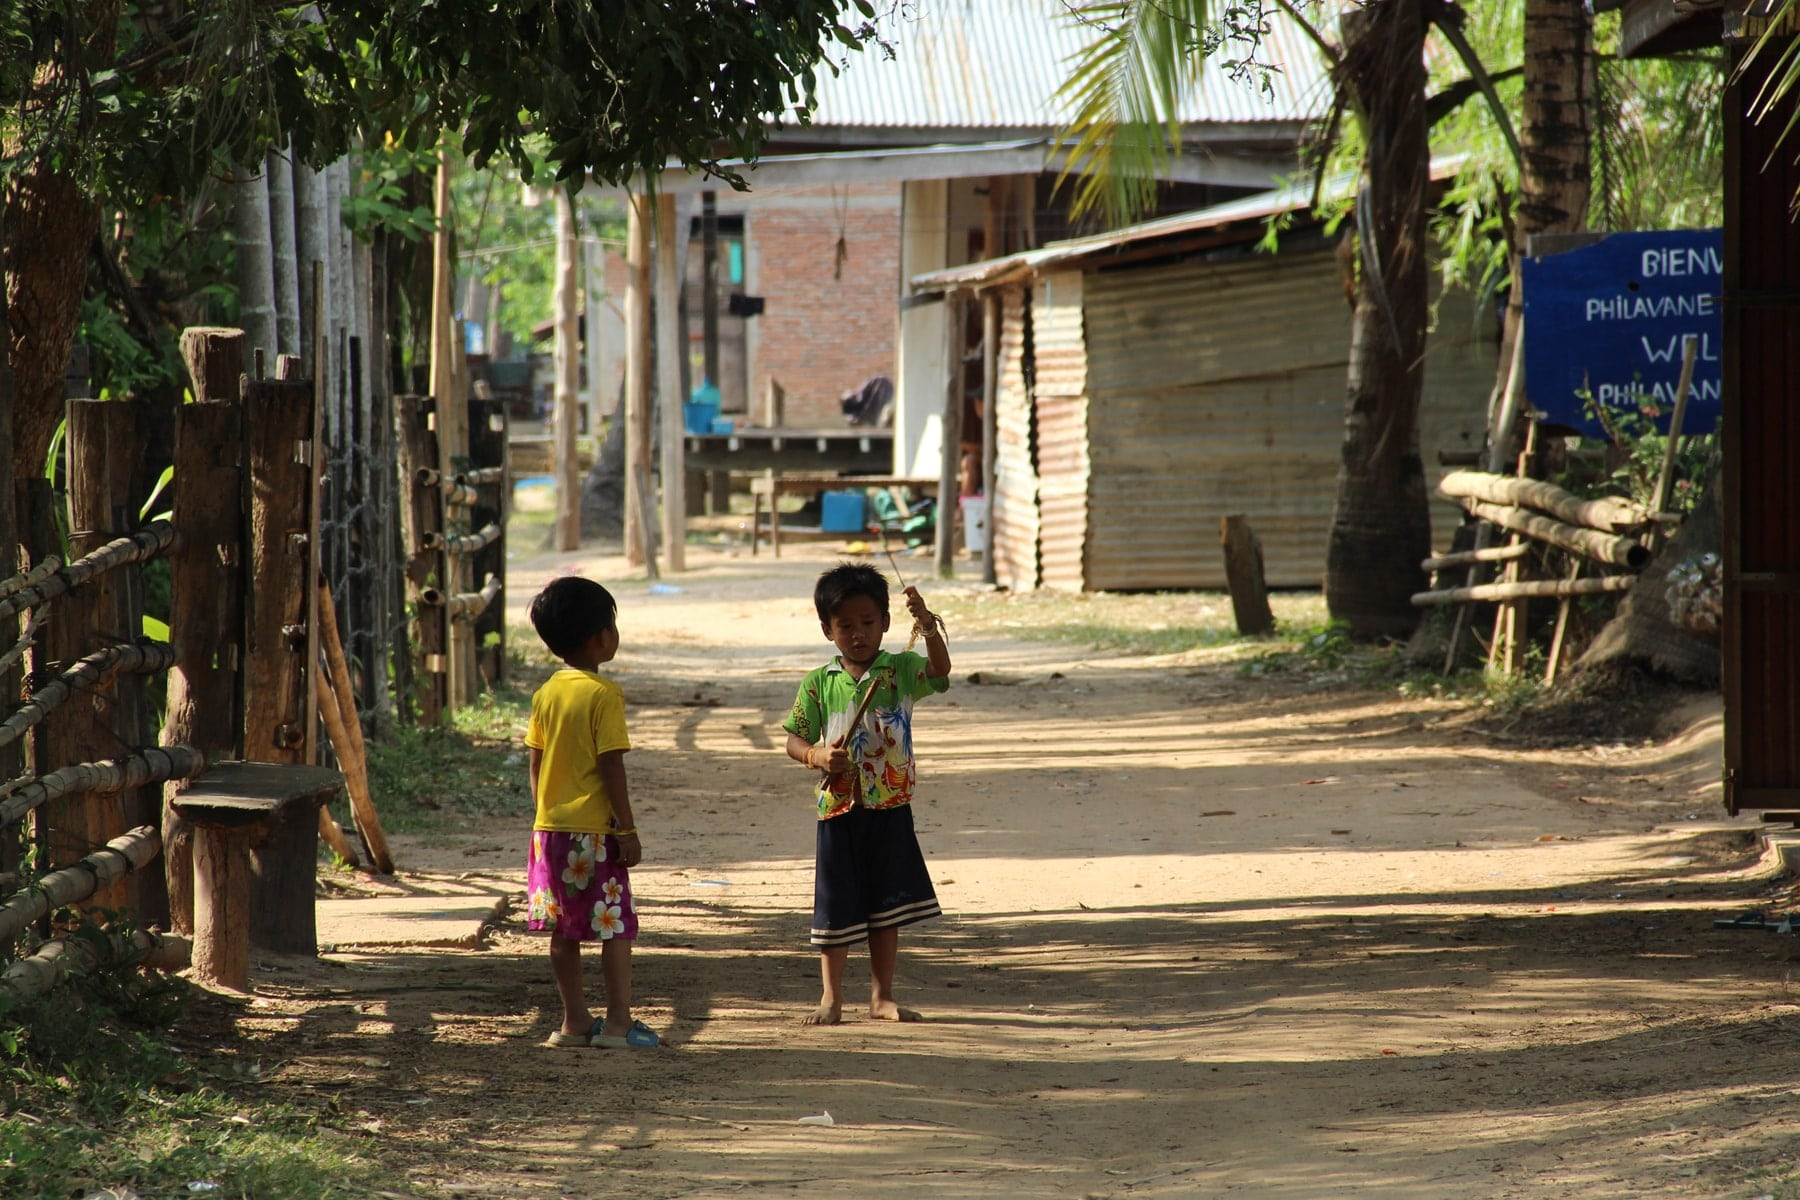 Children playing in a Don Khon village